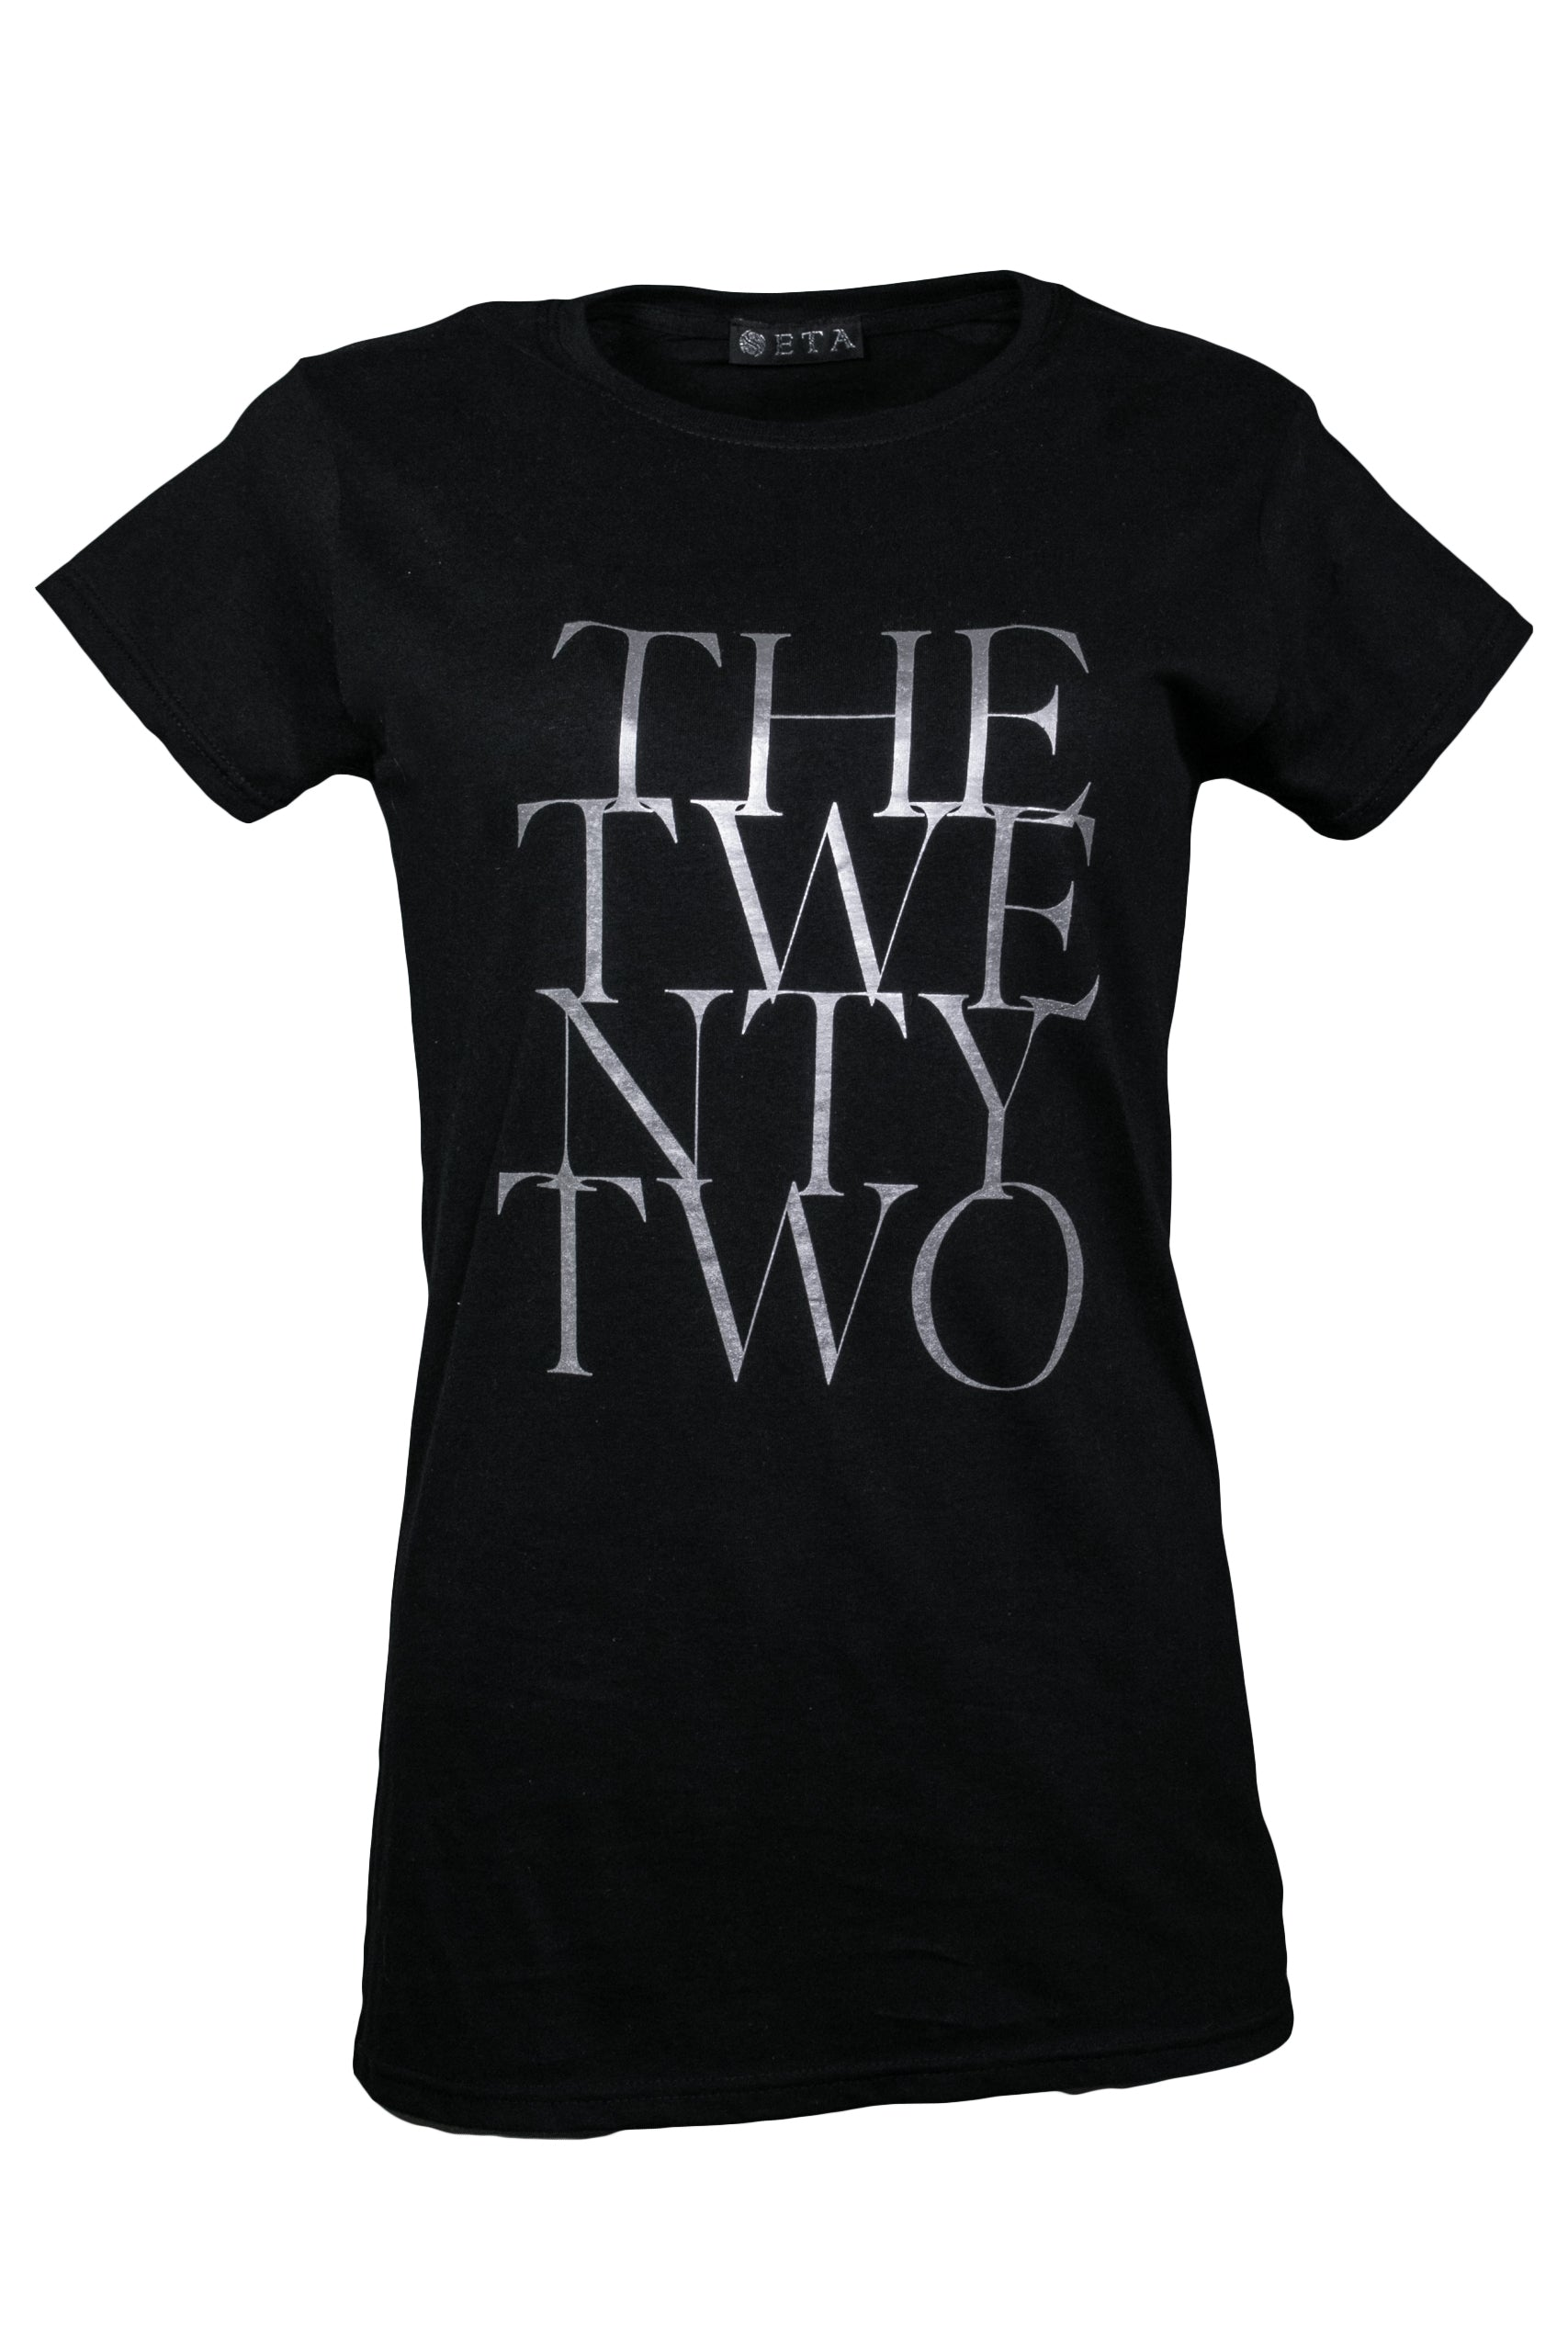 THE TWENTY TWO T SHIRT